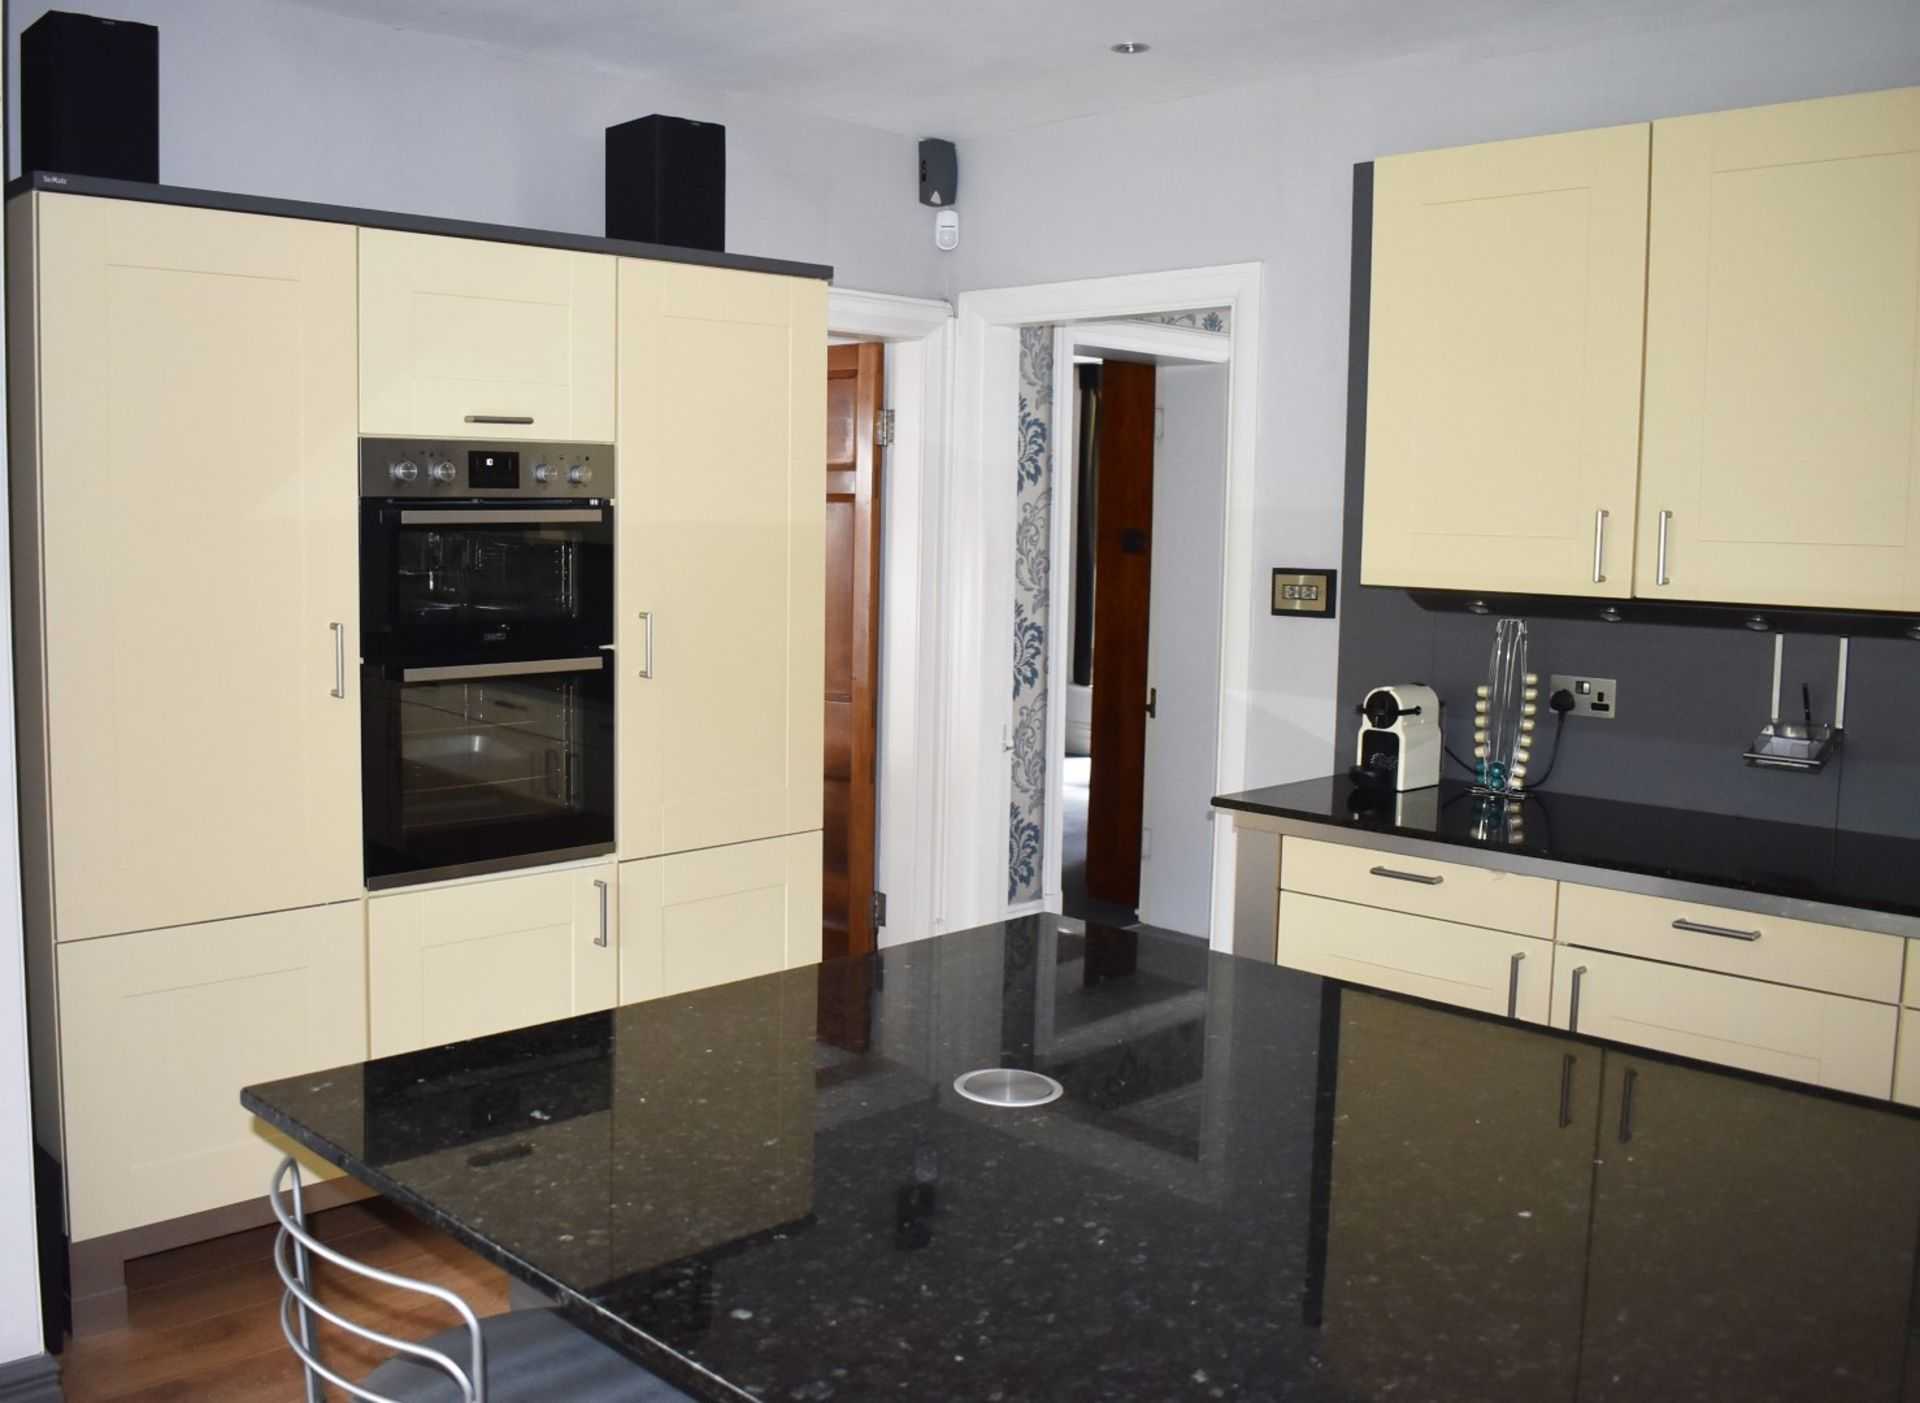 1 x SieMatic Contemporary Fitted Kitchen With Appliances - Features Shaker Style Doors, Central - Image 82 of 96